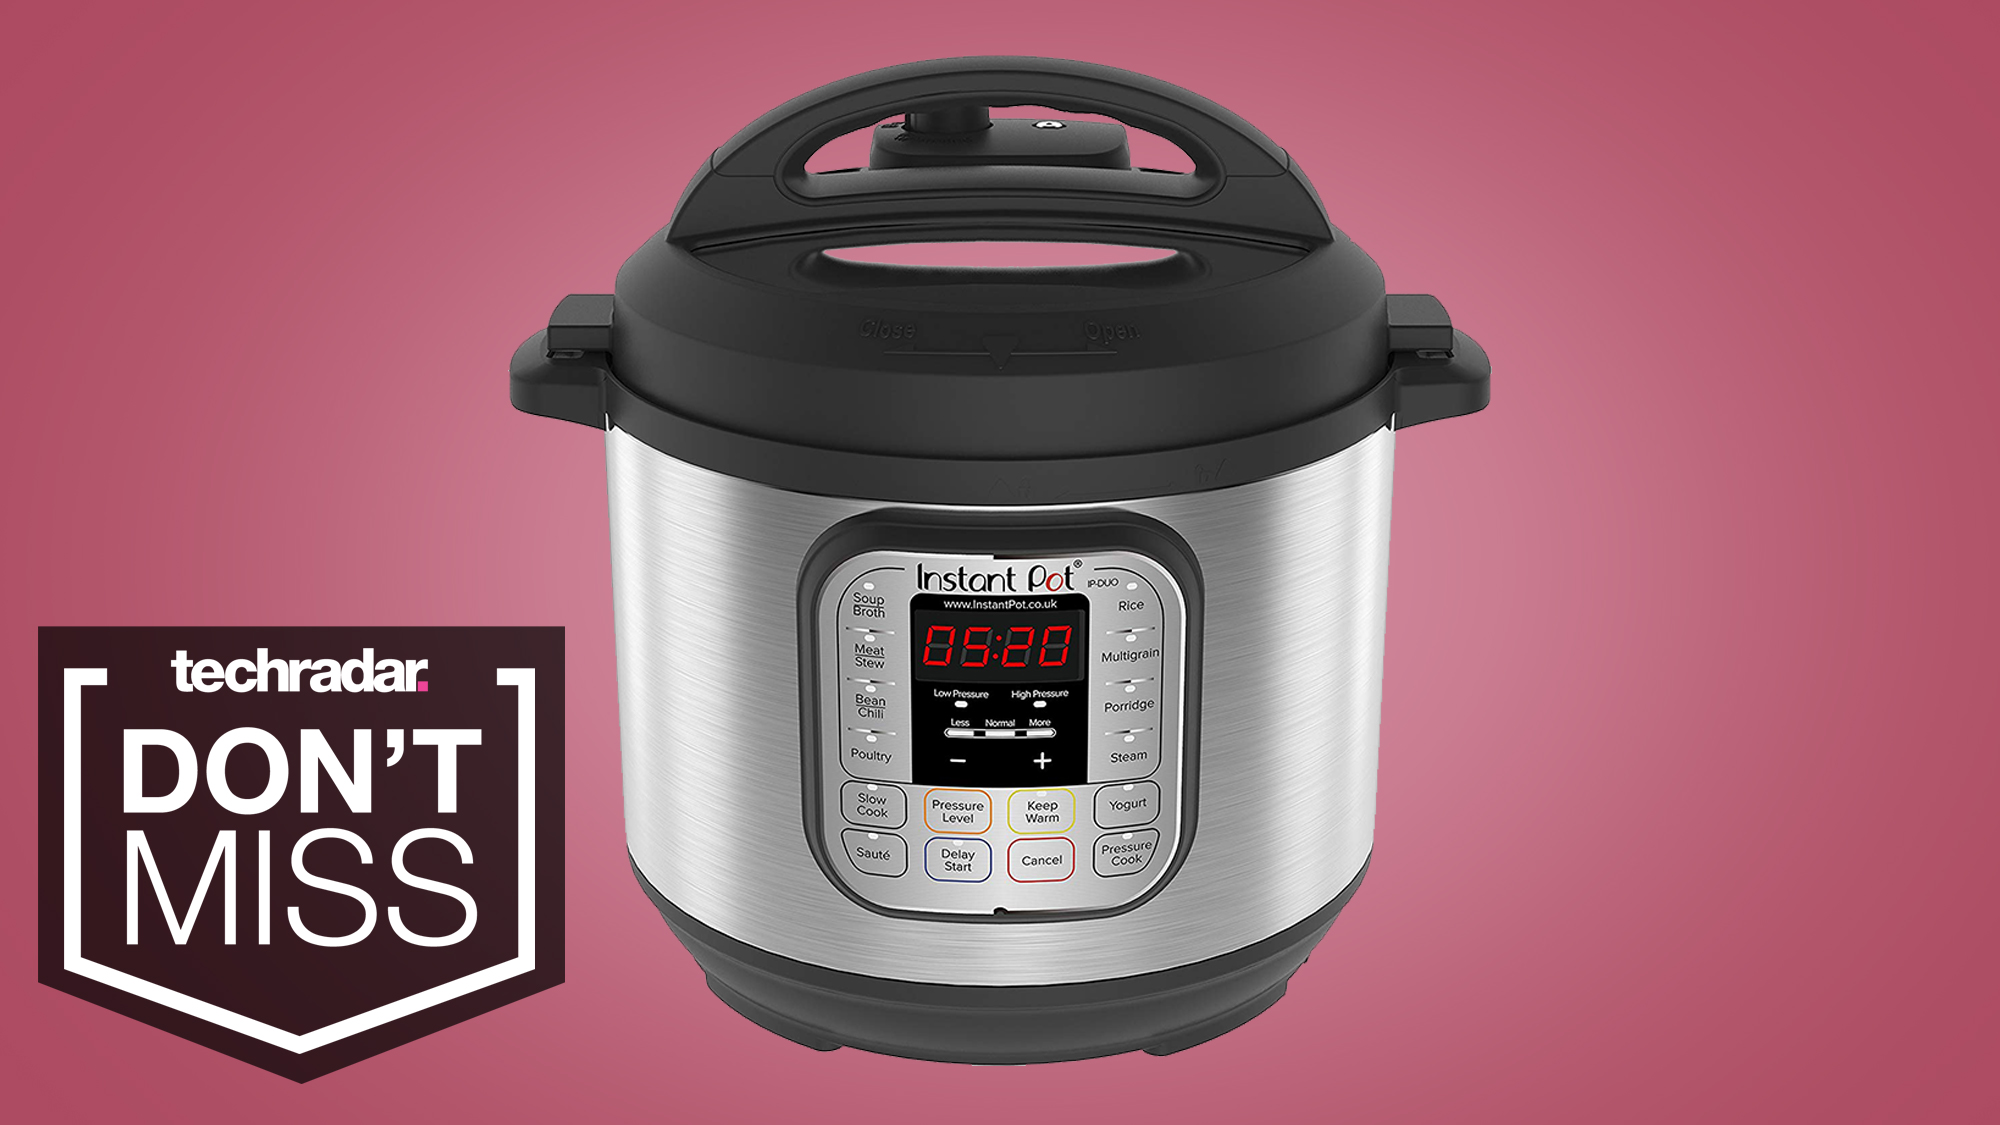 This Instant Pot Duo Boxing Day deal is so good, we just bought one